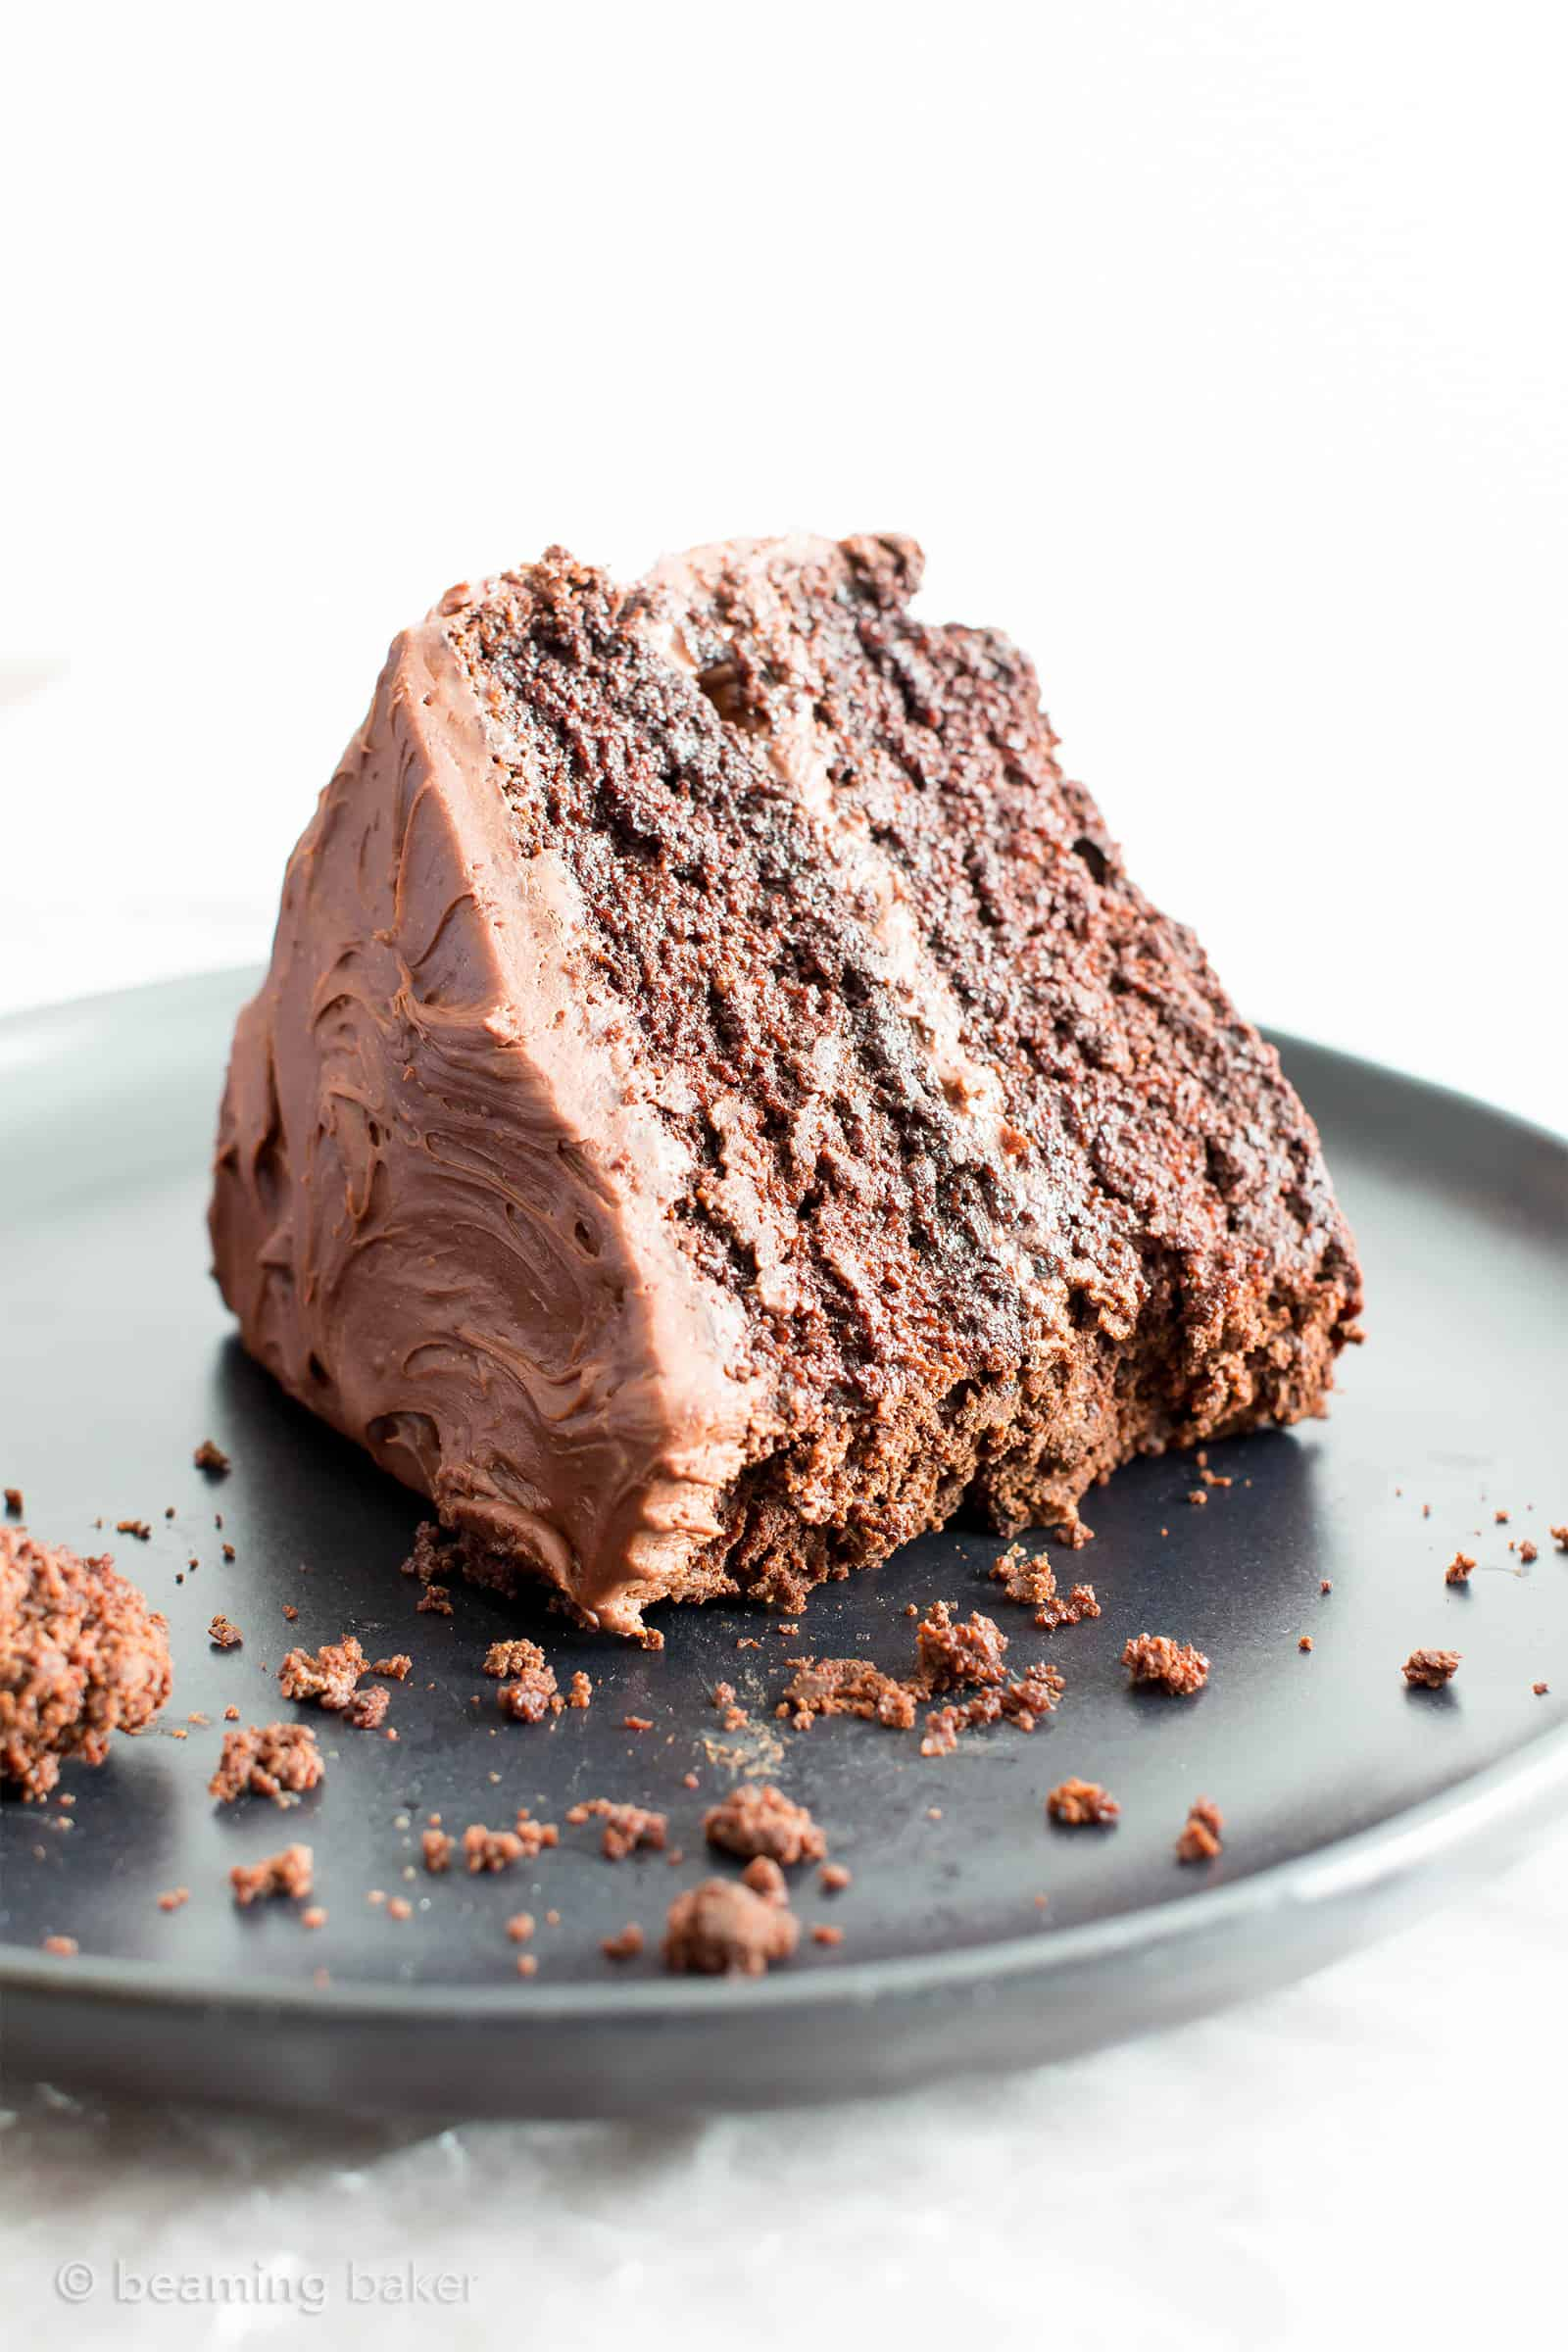 Vegan Chocolate Cake Recipe (V, GF): an easy recipe for supremely rich, perfectly moist chocolate cake that covered in a thick layer of irresistible chocolate frosting! #Vegan #GlutenFree #DairyFree #Chocolate #Cake #Dessert | Recipe on BeamingBaker.com